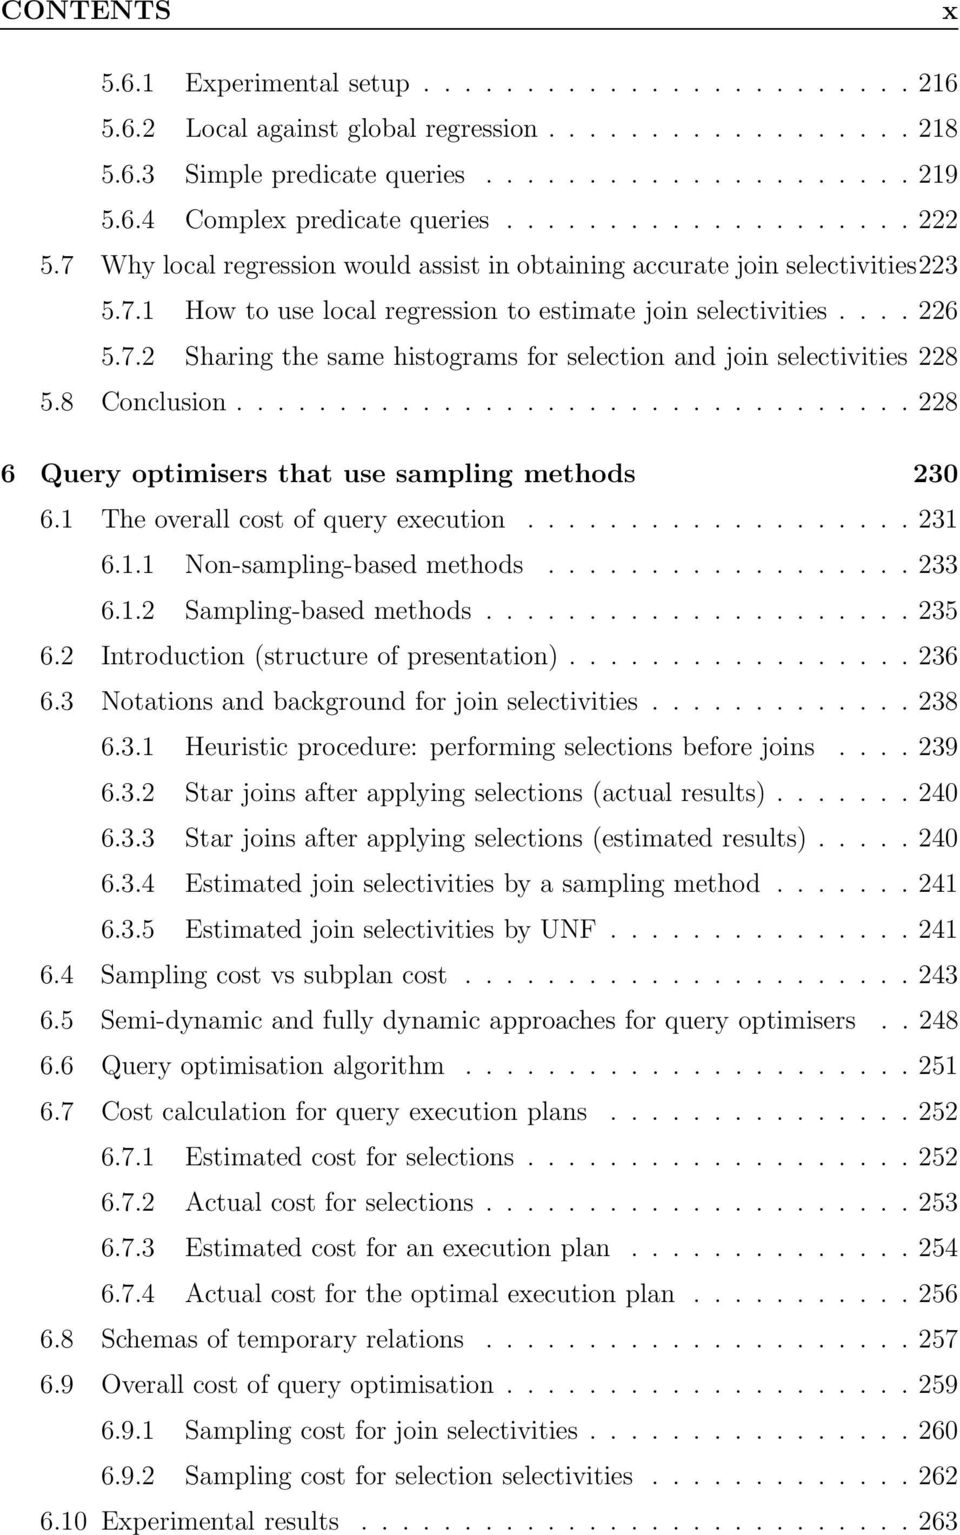 8 Conclusion................................. 228 6 Query optimisers that use sampling methods 230 6.1 The overall cost of query execution................... 231 6.1.1 Non-sampling-based methods.